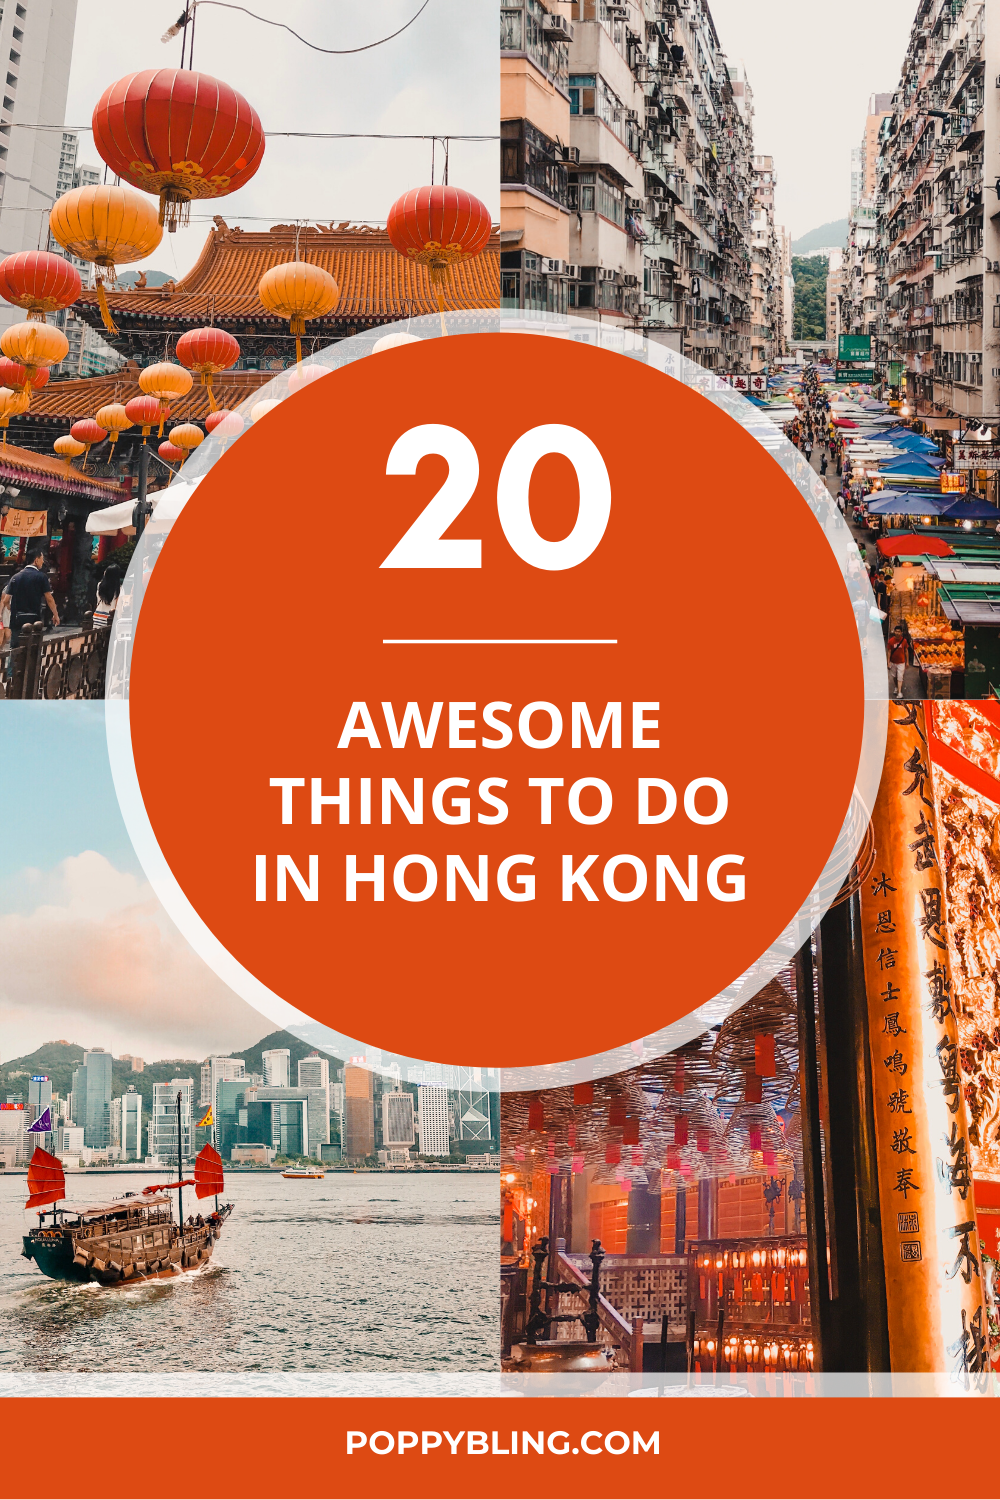 20 awesome things to do in Hong Kong